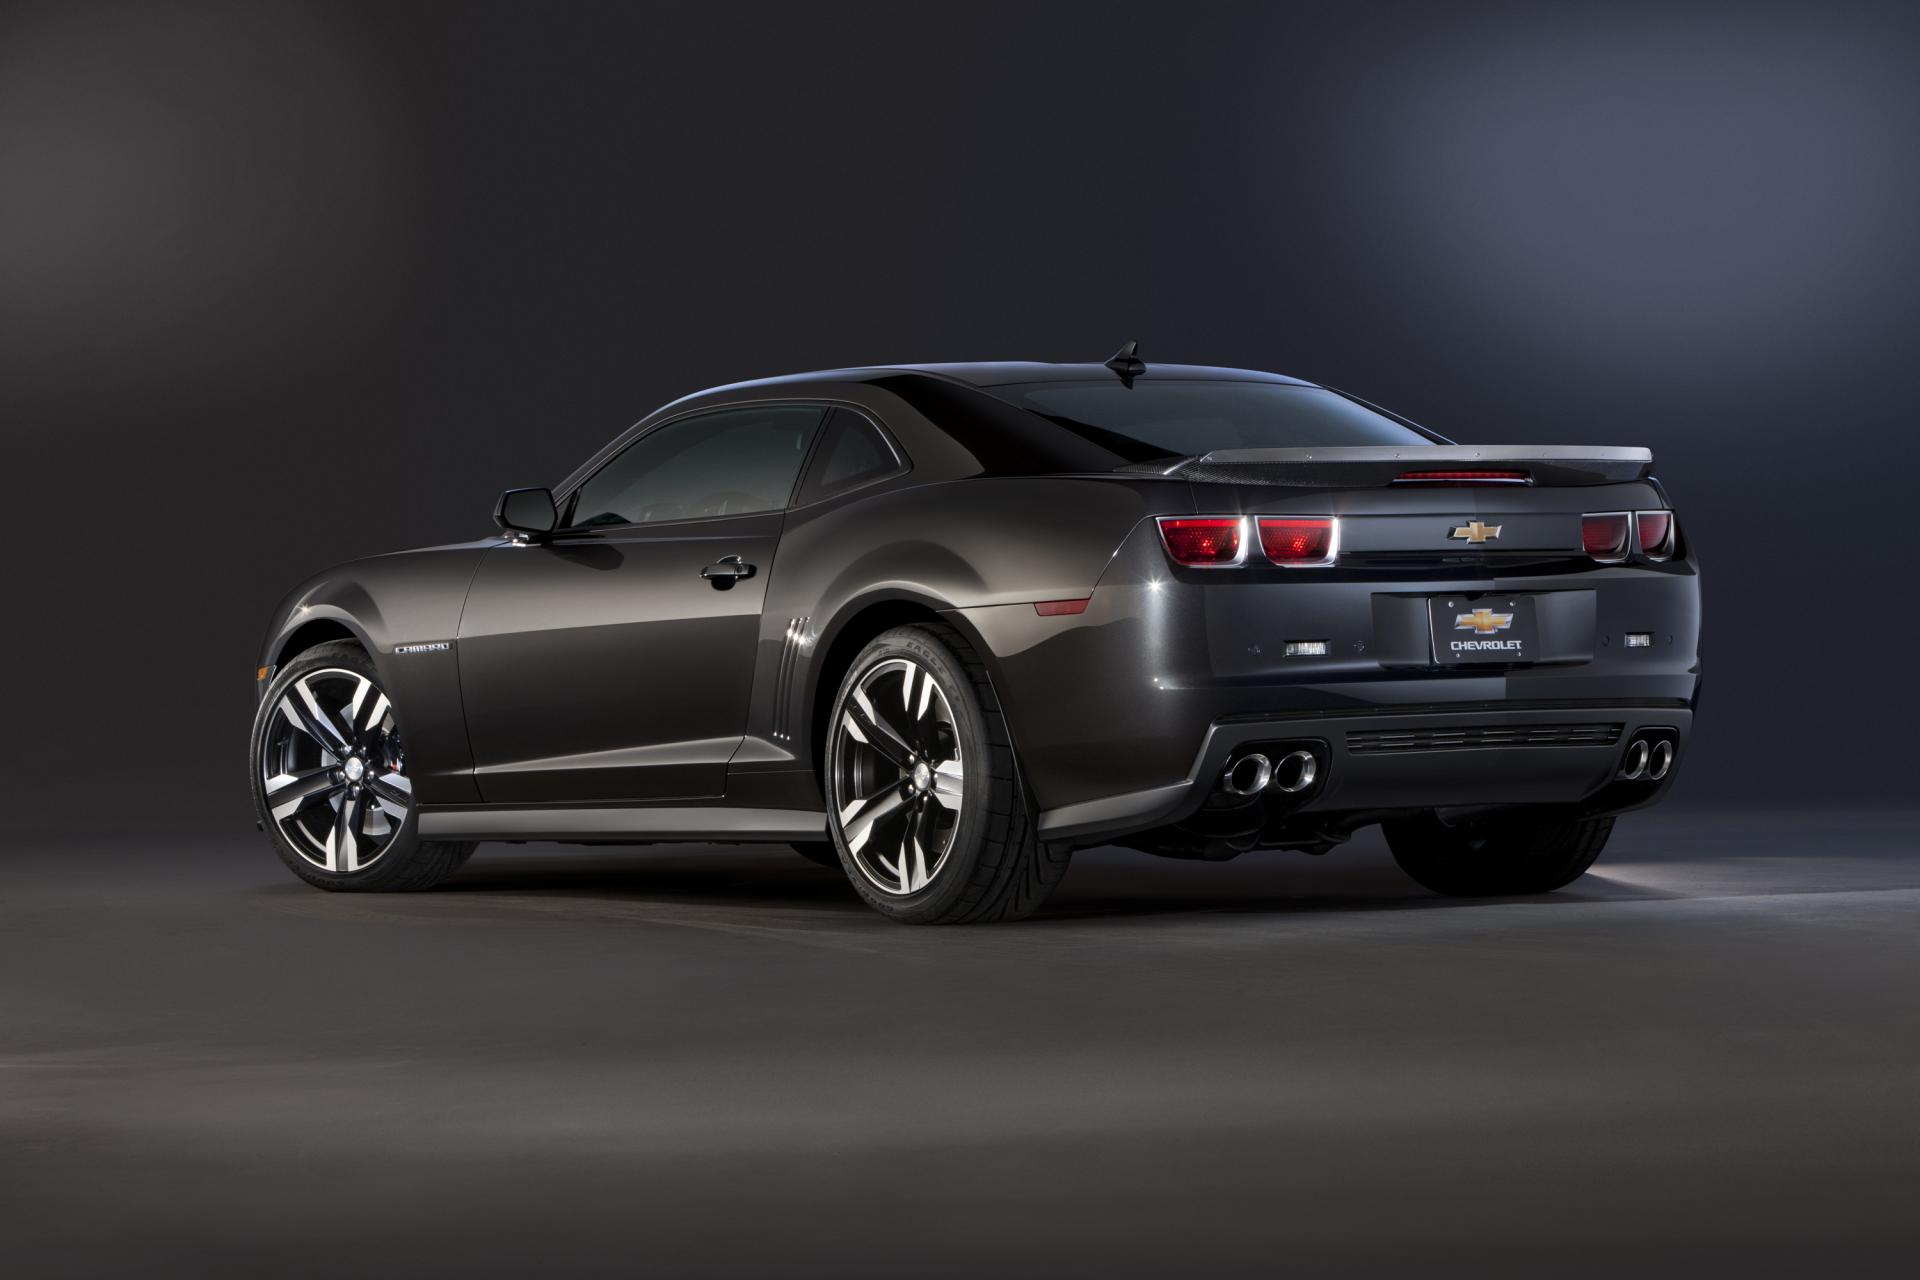 2012 chevrolet camaro zl1 carbon concept. Black Bedroom Furniture Sets. Home Design Ideas